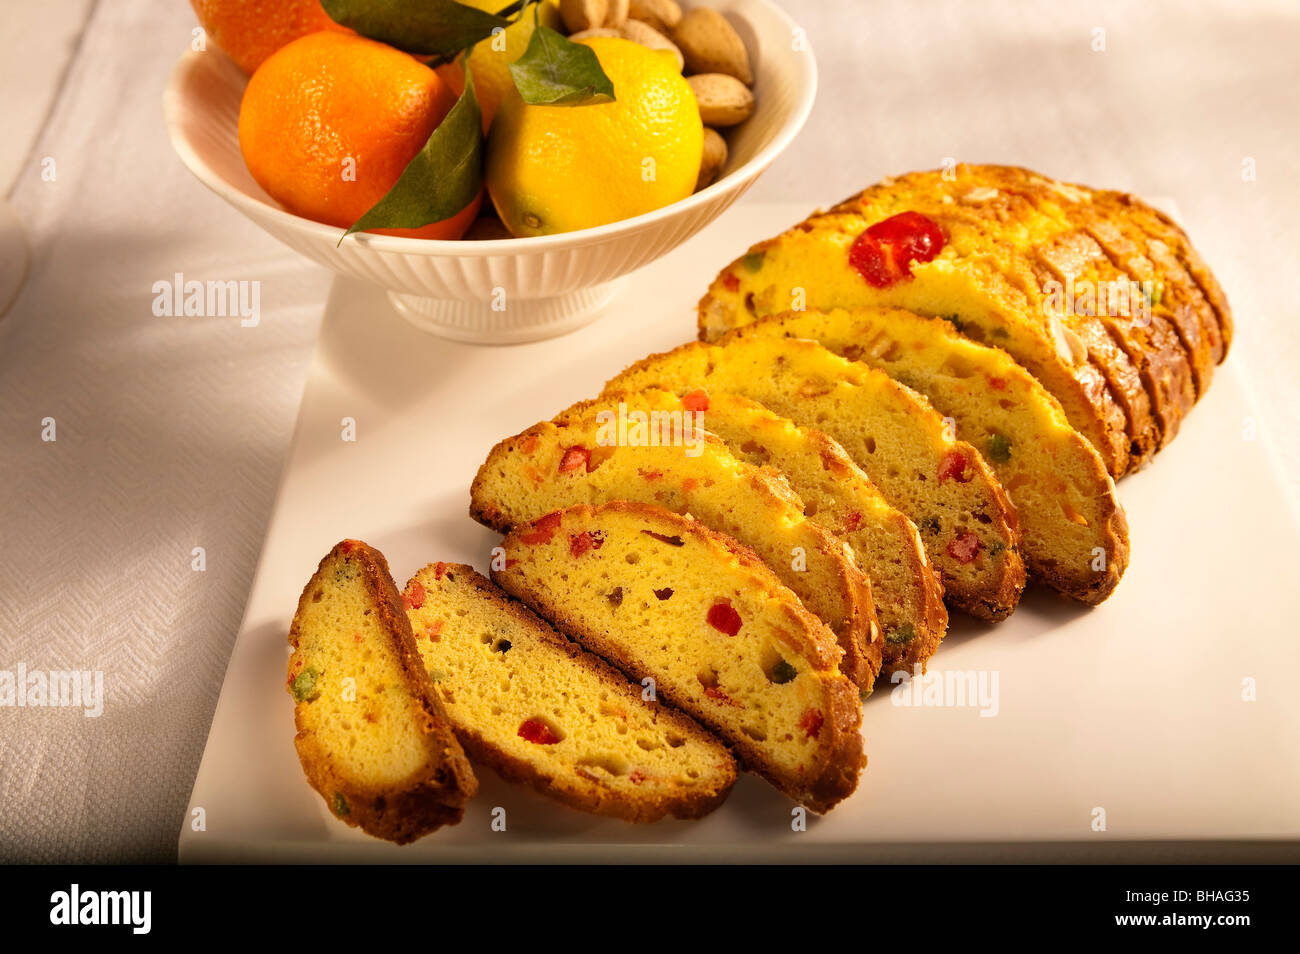 Mondel Bread displayed on a table ready to eat - Stock Image